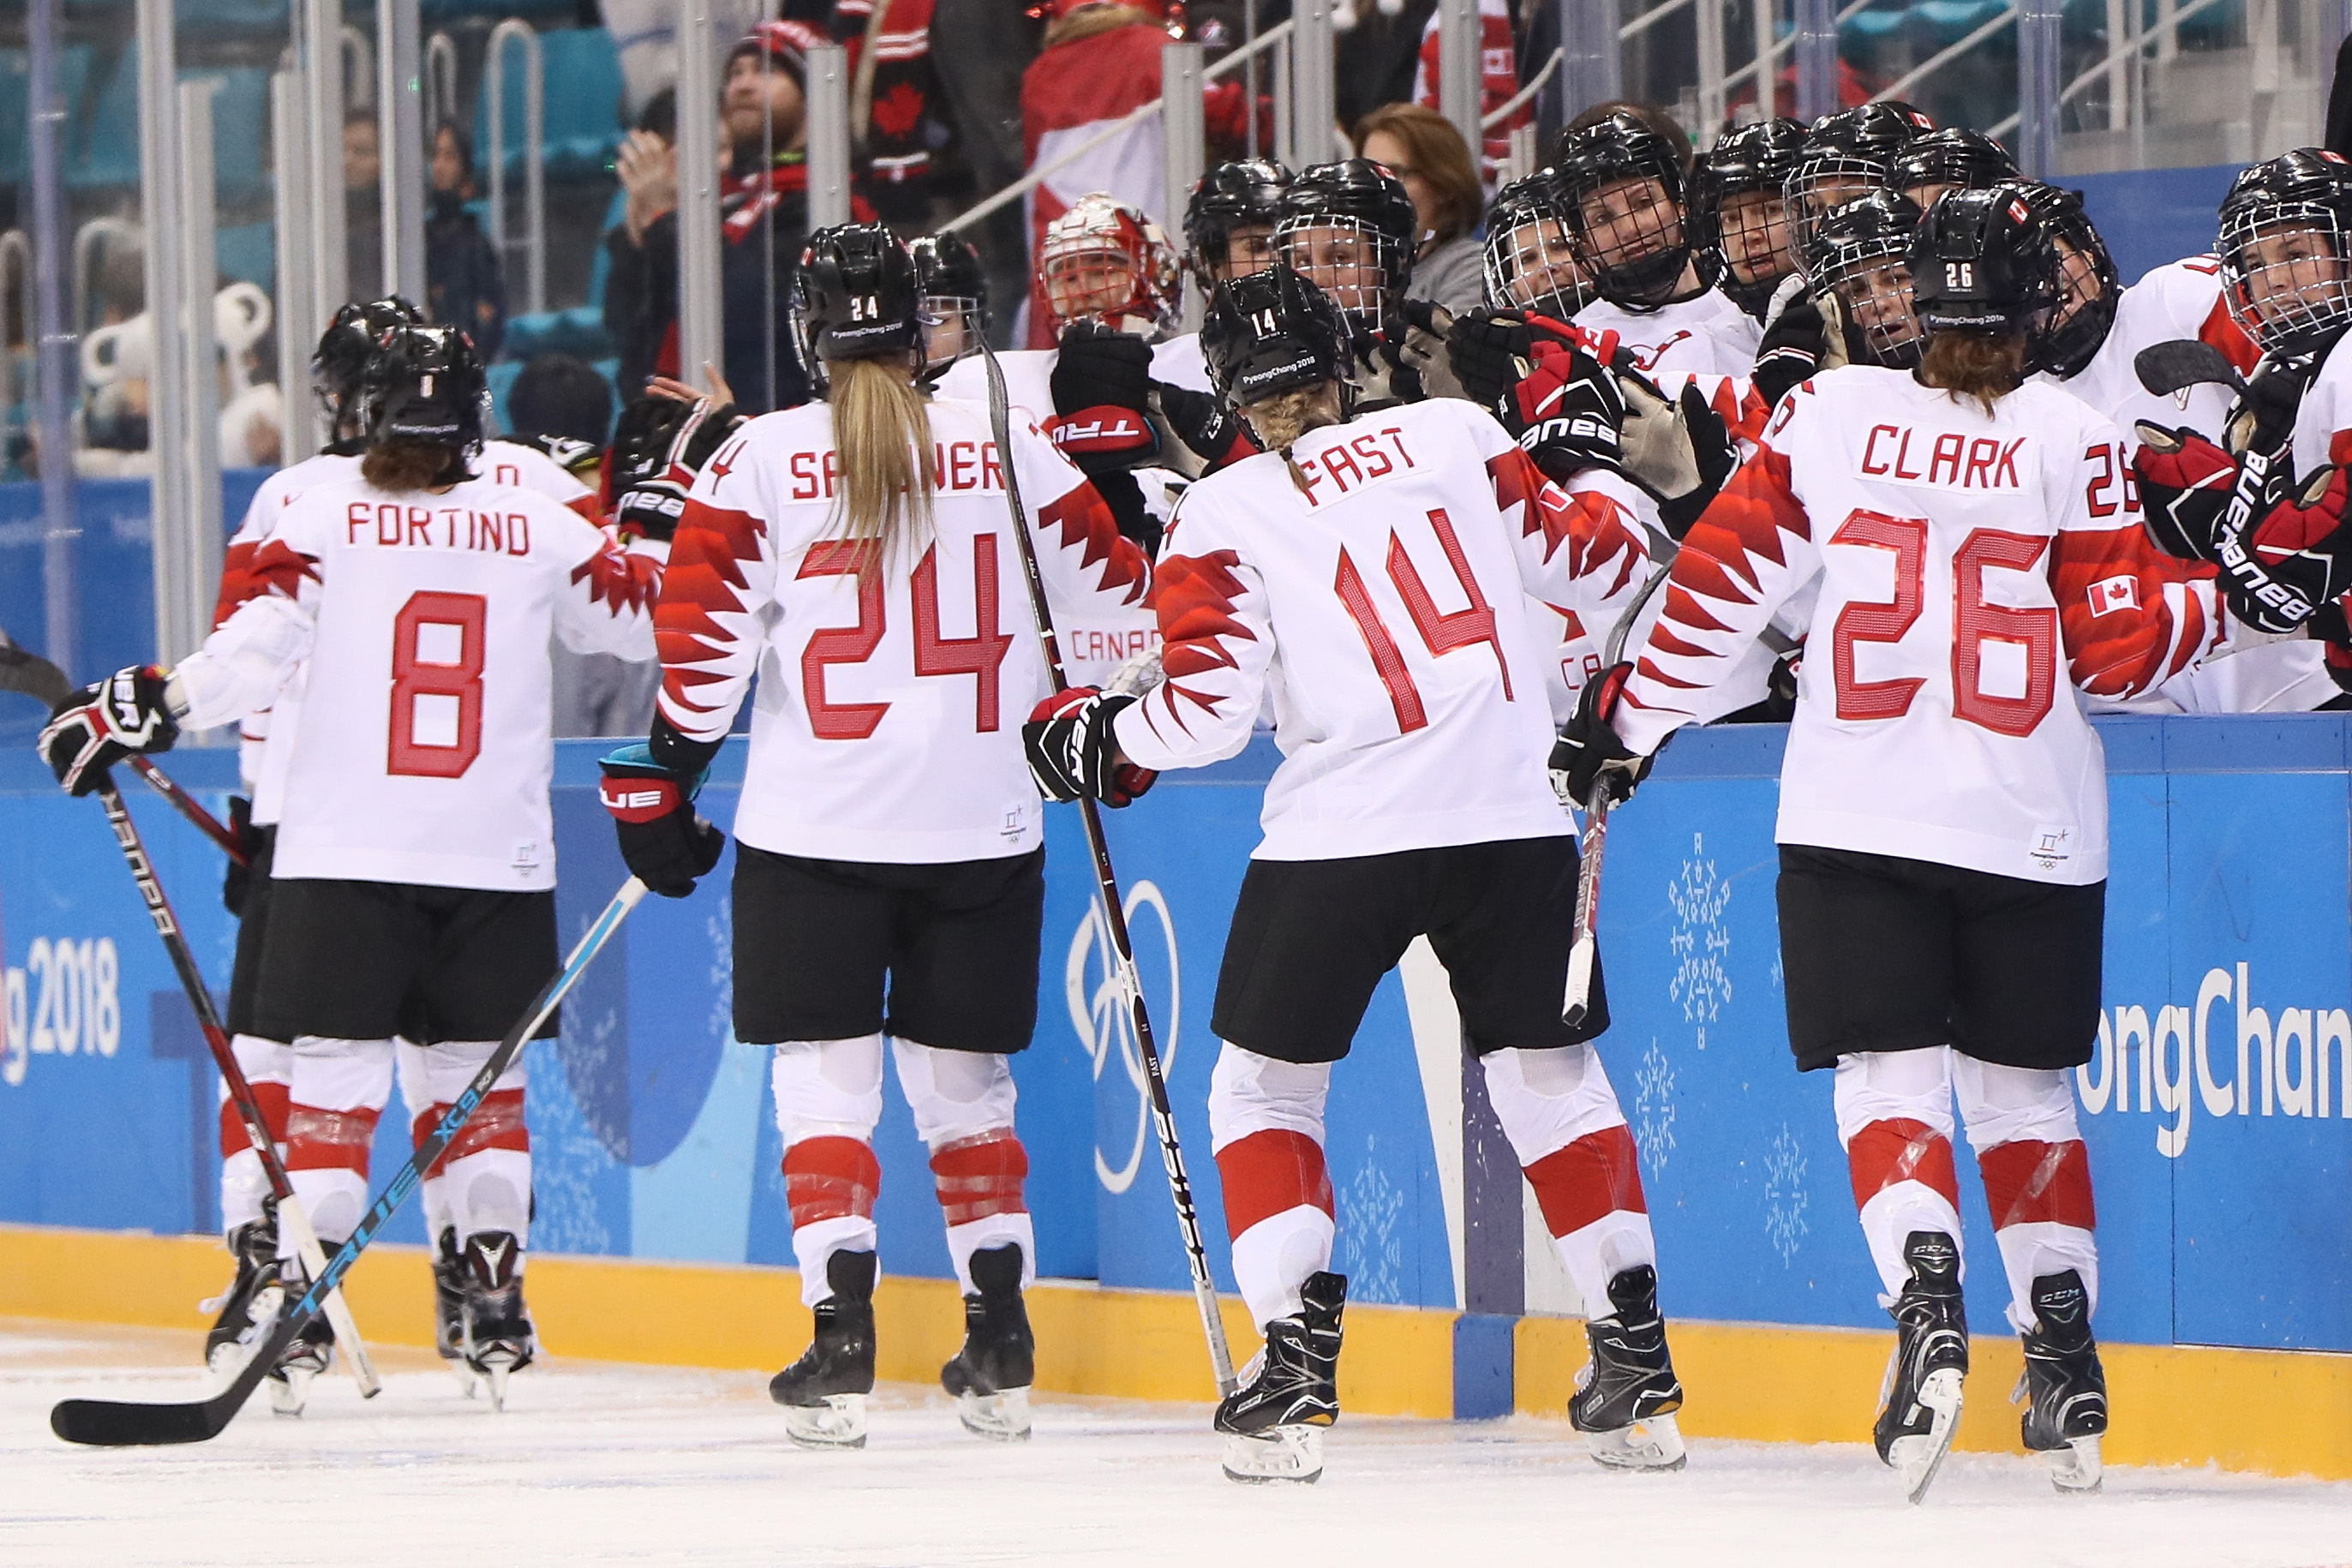 Team Canada celebrates after a goal against Olympic Athletes from Russia during the Ice Hockey Women Play-offs Semifinals